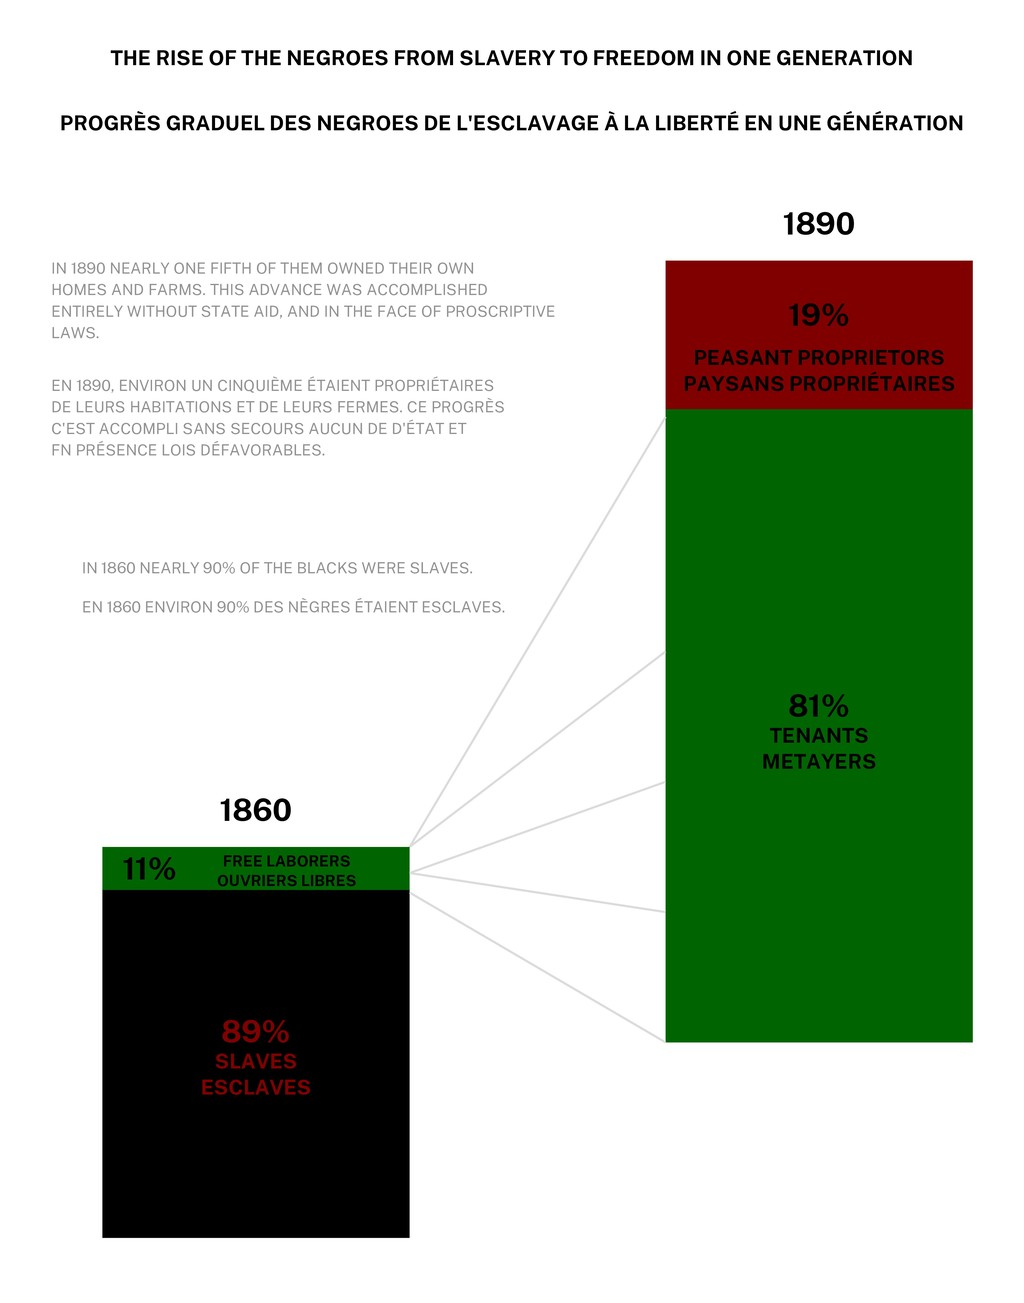 THE RISE OF THE NEGROES FROM SLAVERY TO FREEDOM...